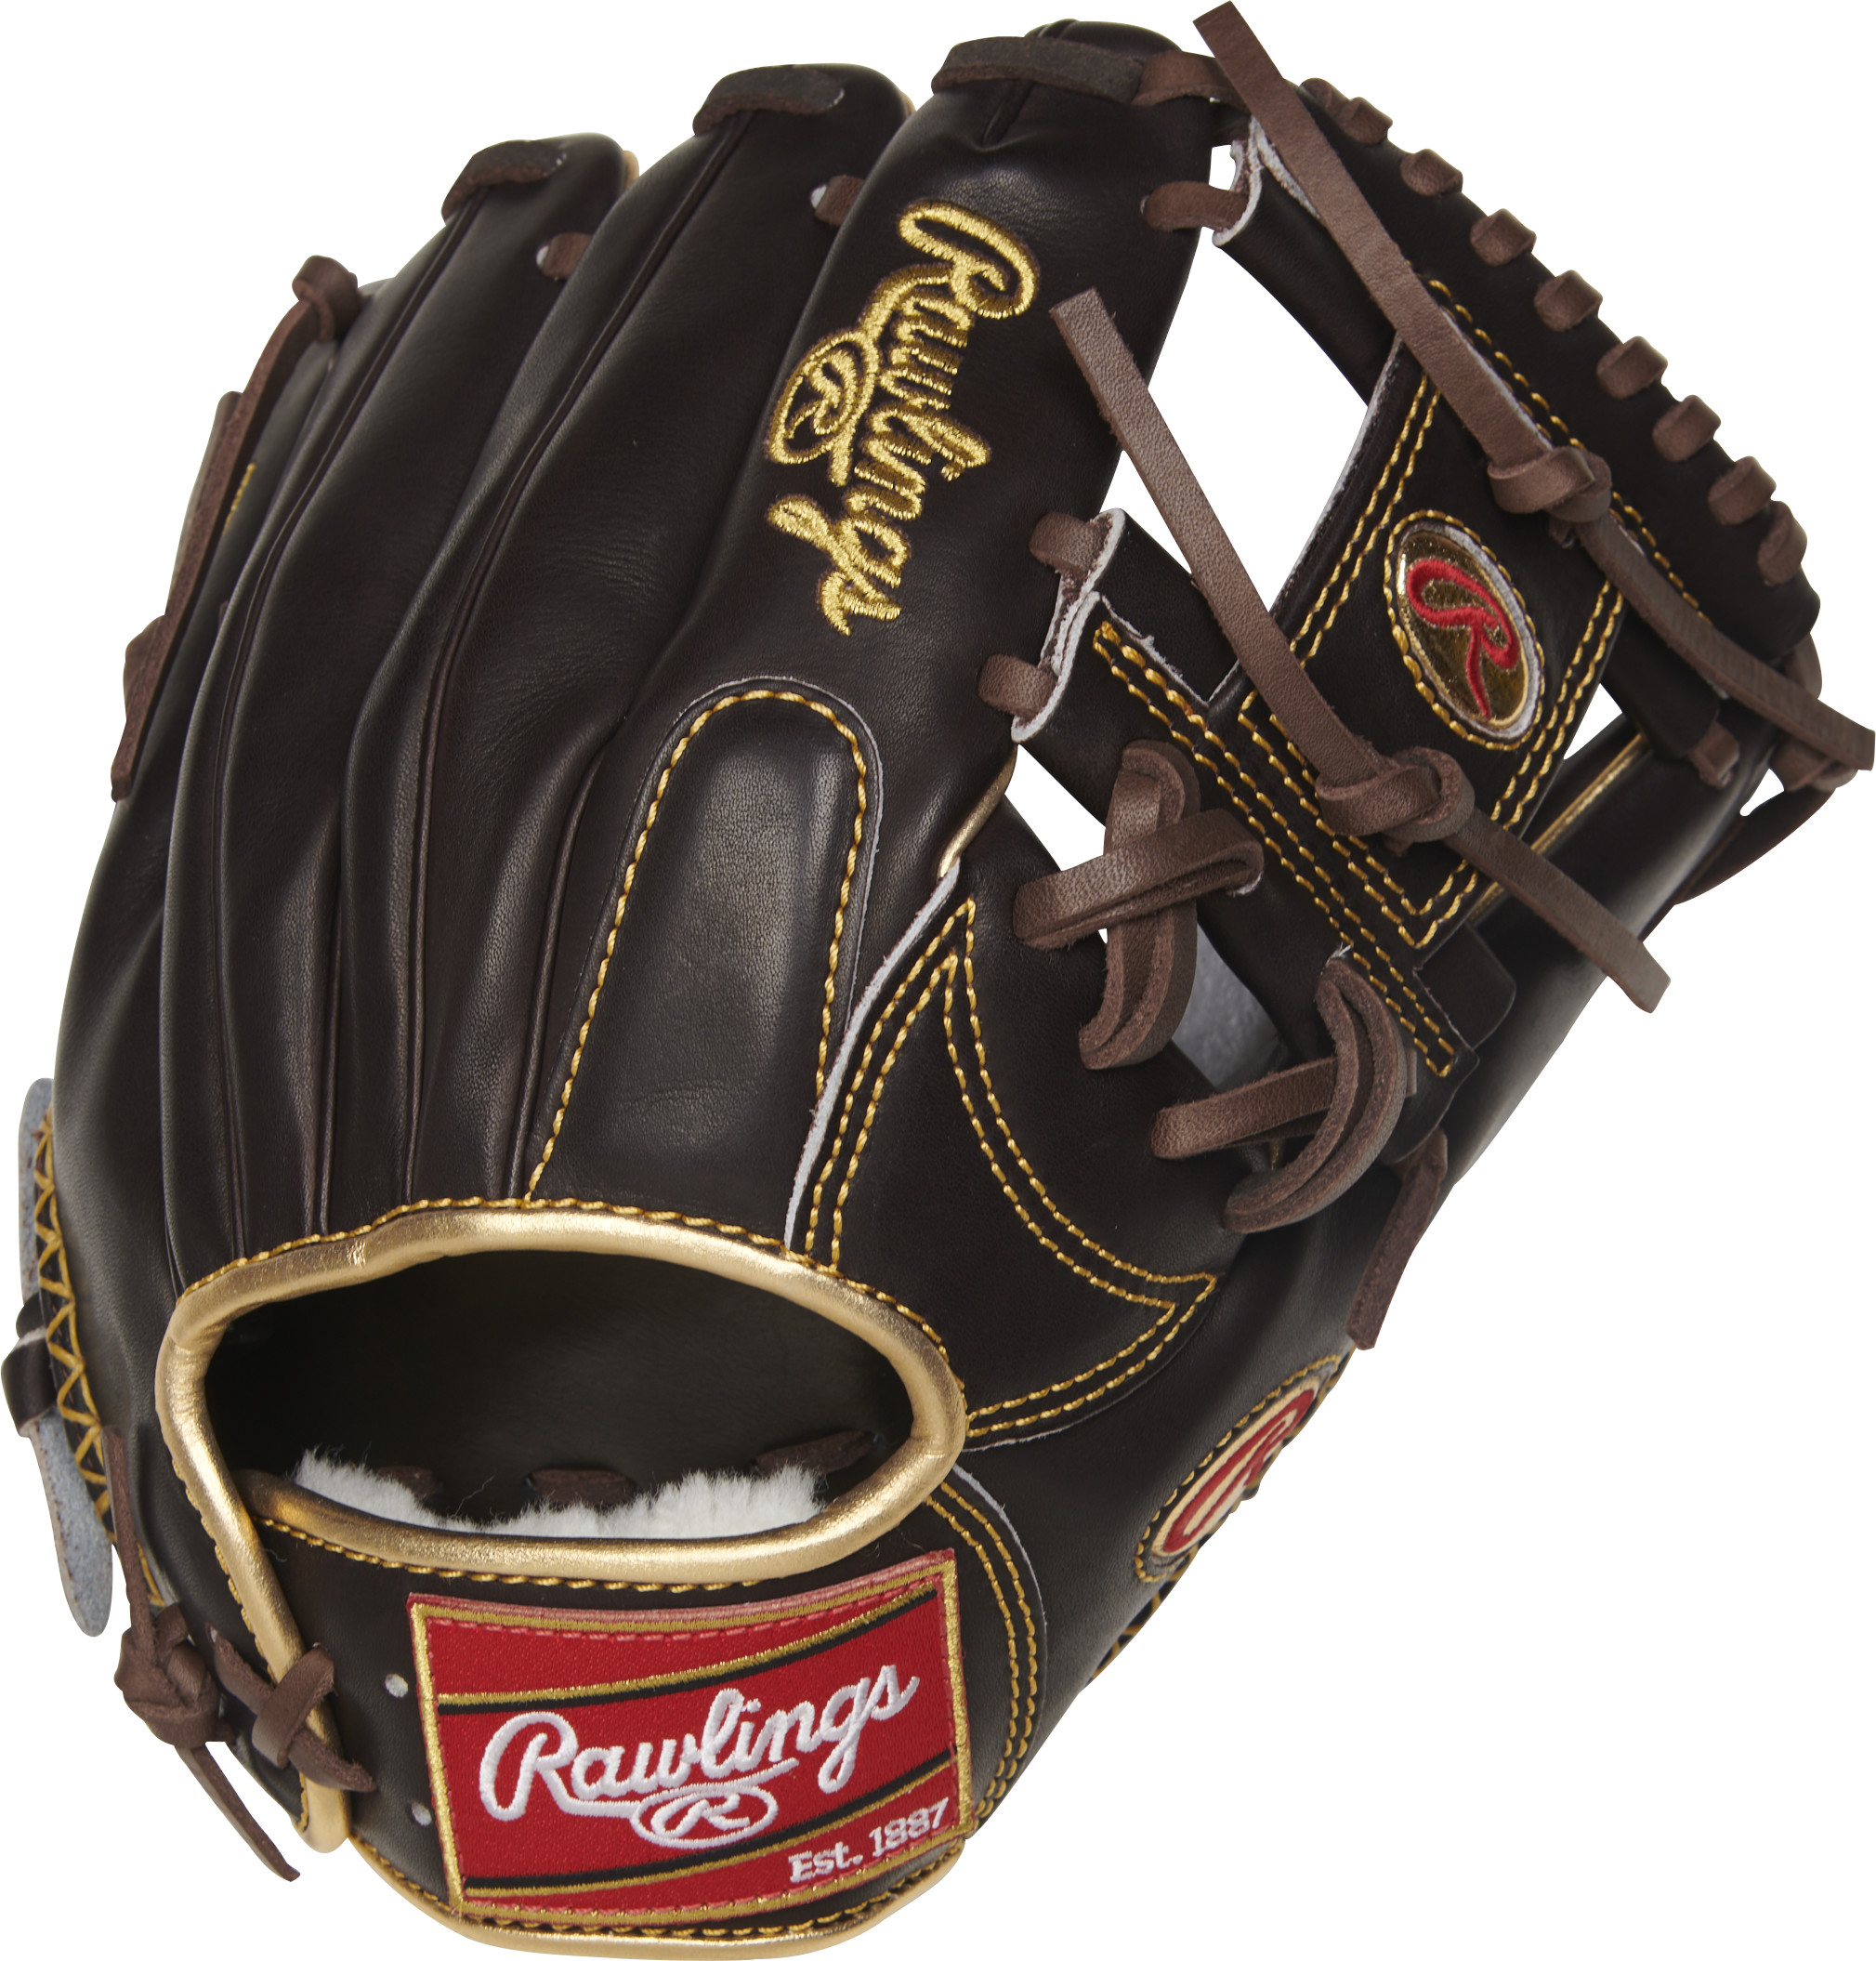 http://www.bestbatdeals.com/images/gloves/rawlings/RGGNP5-2MO-2.jpg